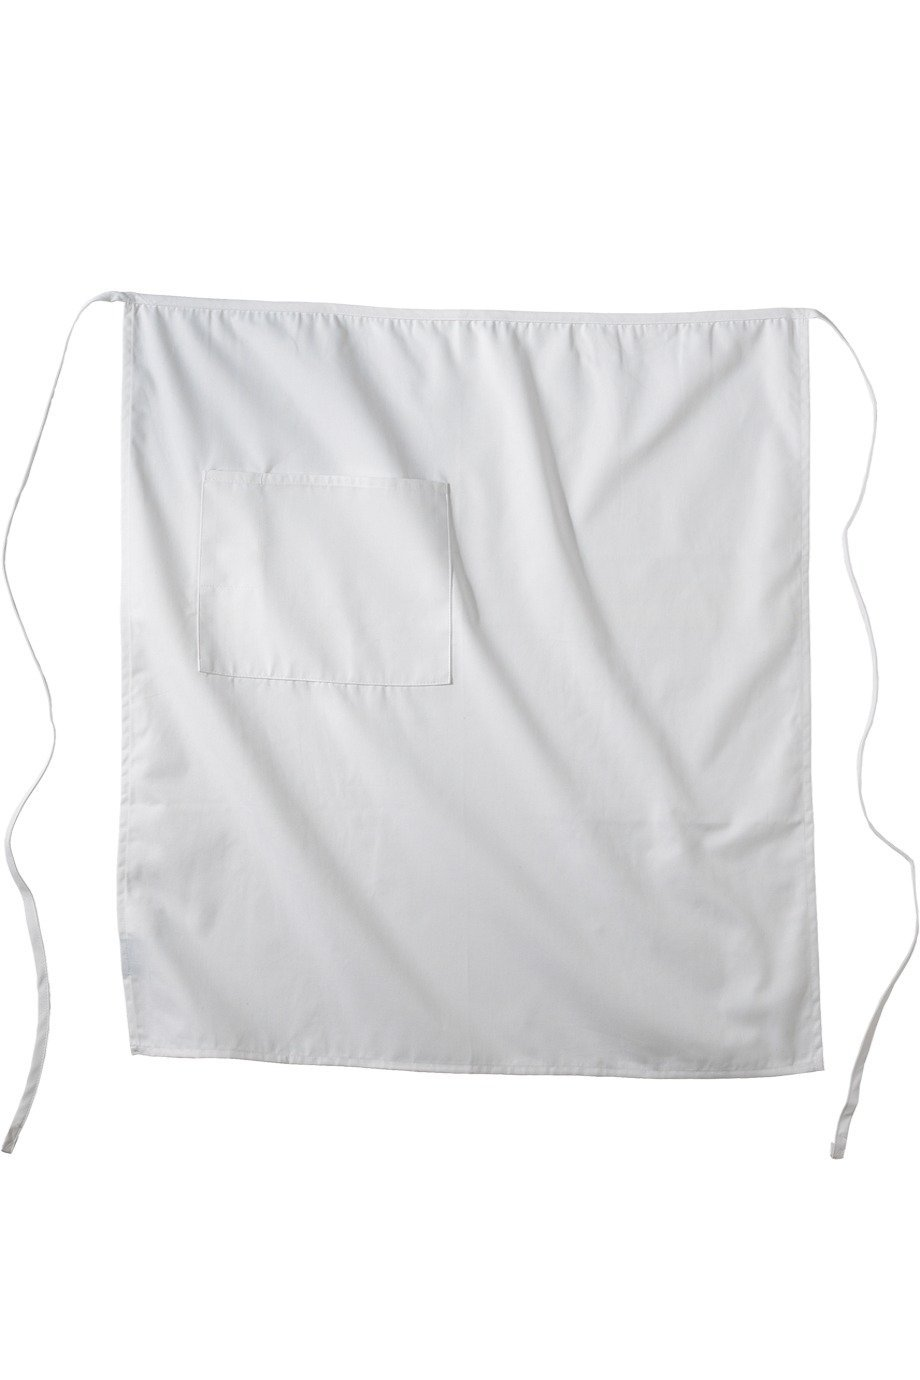 White Long Bistro Apron (1 Pocket)